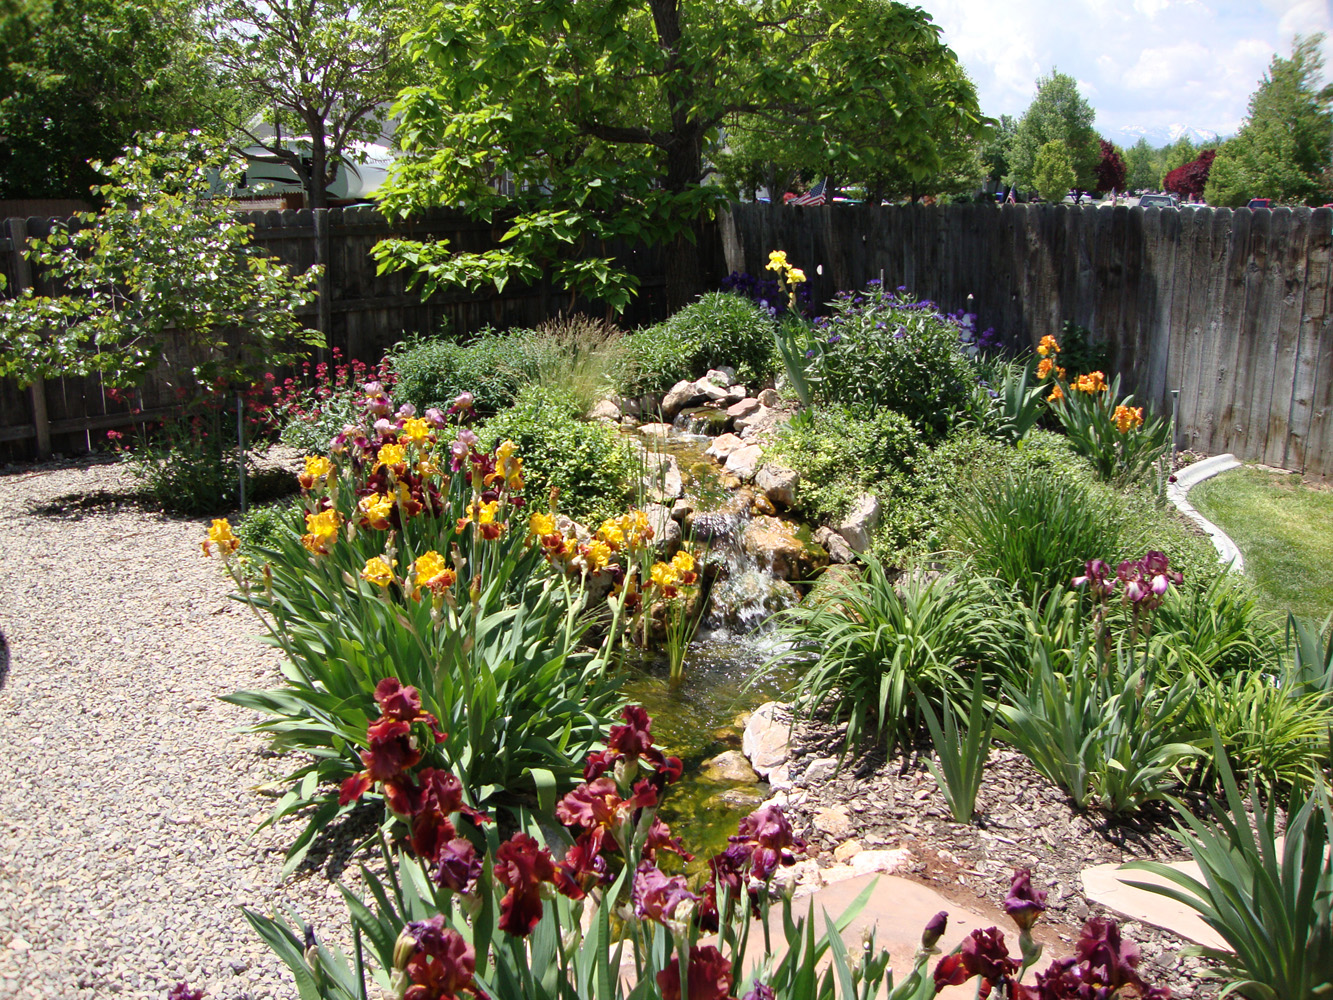 Do it yourself water features - We Also Supply The Material For The Do It Yourself Pond Builders A Touch Of Nature Provides Cleanings Maintenance And Service For Existing Ponds